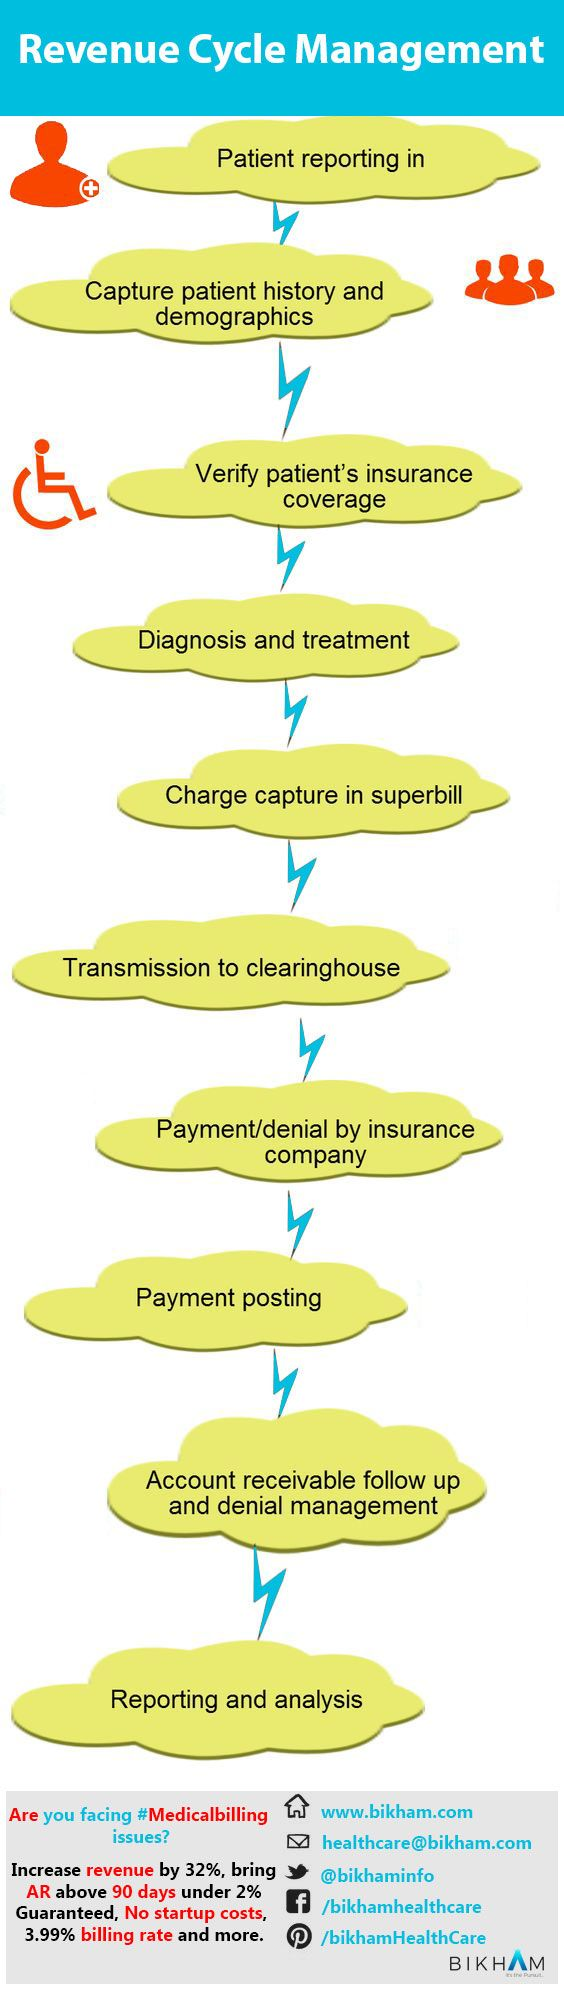 medium resolution of learn how revenue cycle management flow chart work here are main rcm revenue cycle management steps patient pre authorization eligibility benefits